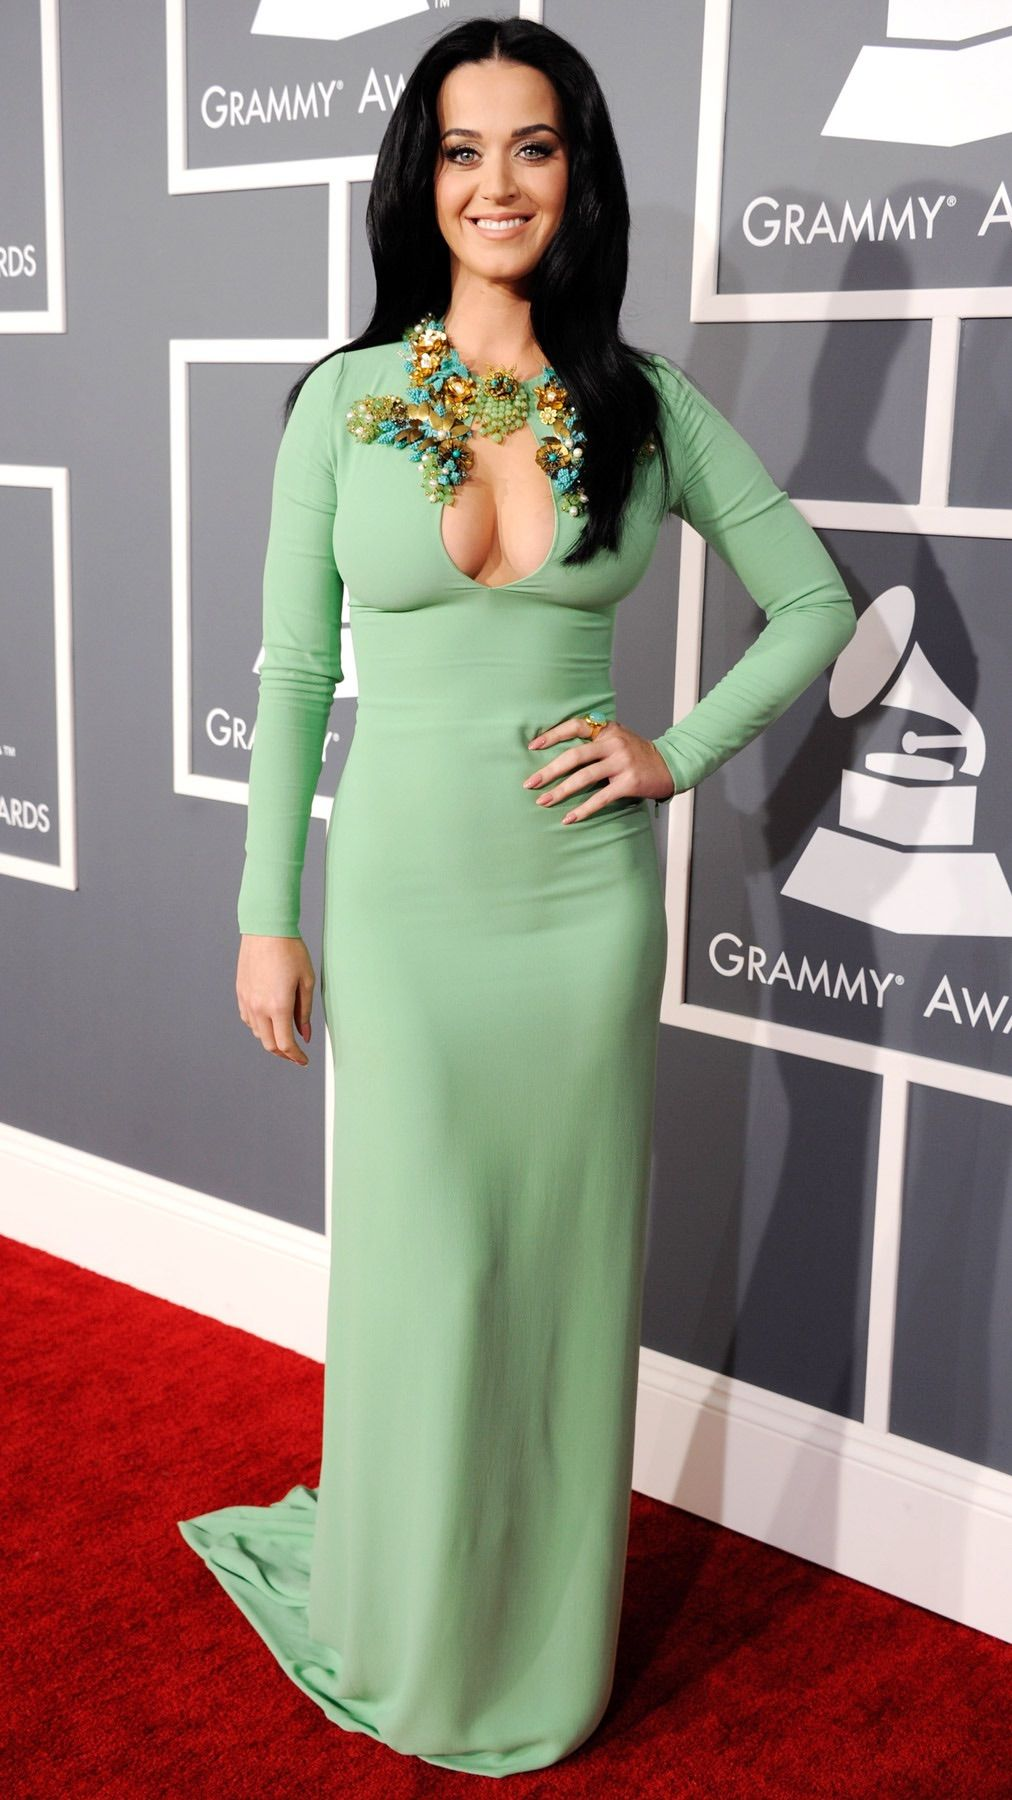 Katy Perry Beautiful In Green Katy Perry Grammy Katy Perry Dress Katy Perry Hot